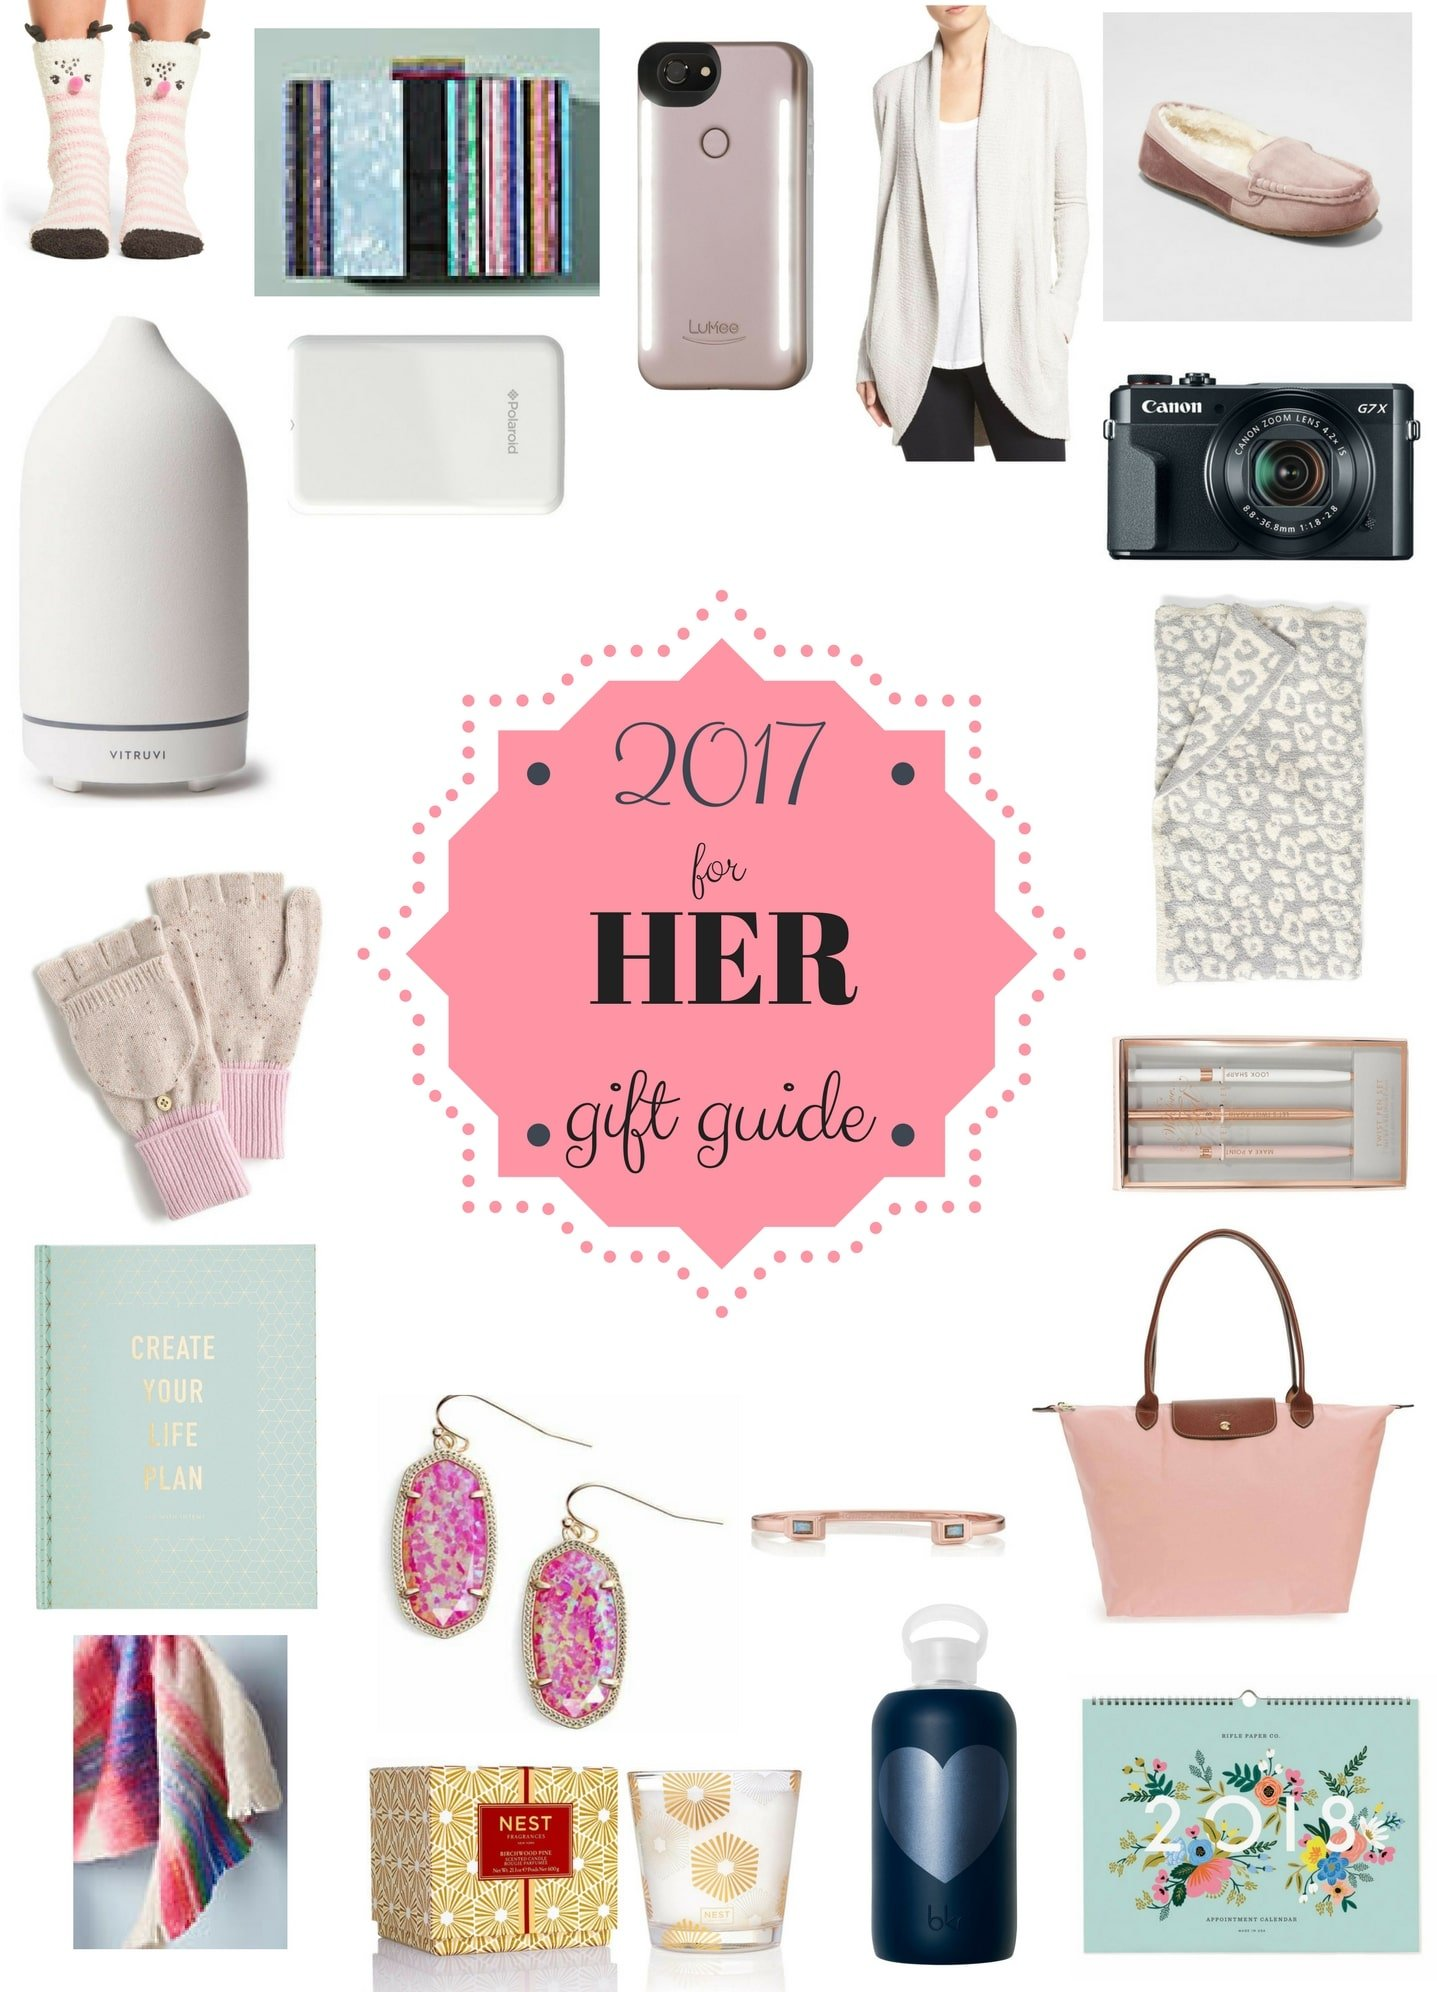 Gift Guide for Her - 2017 Holiday Gift Guide for Women